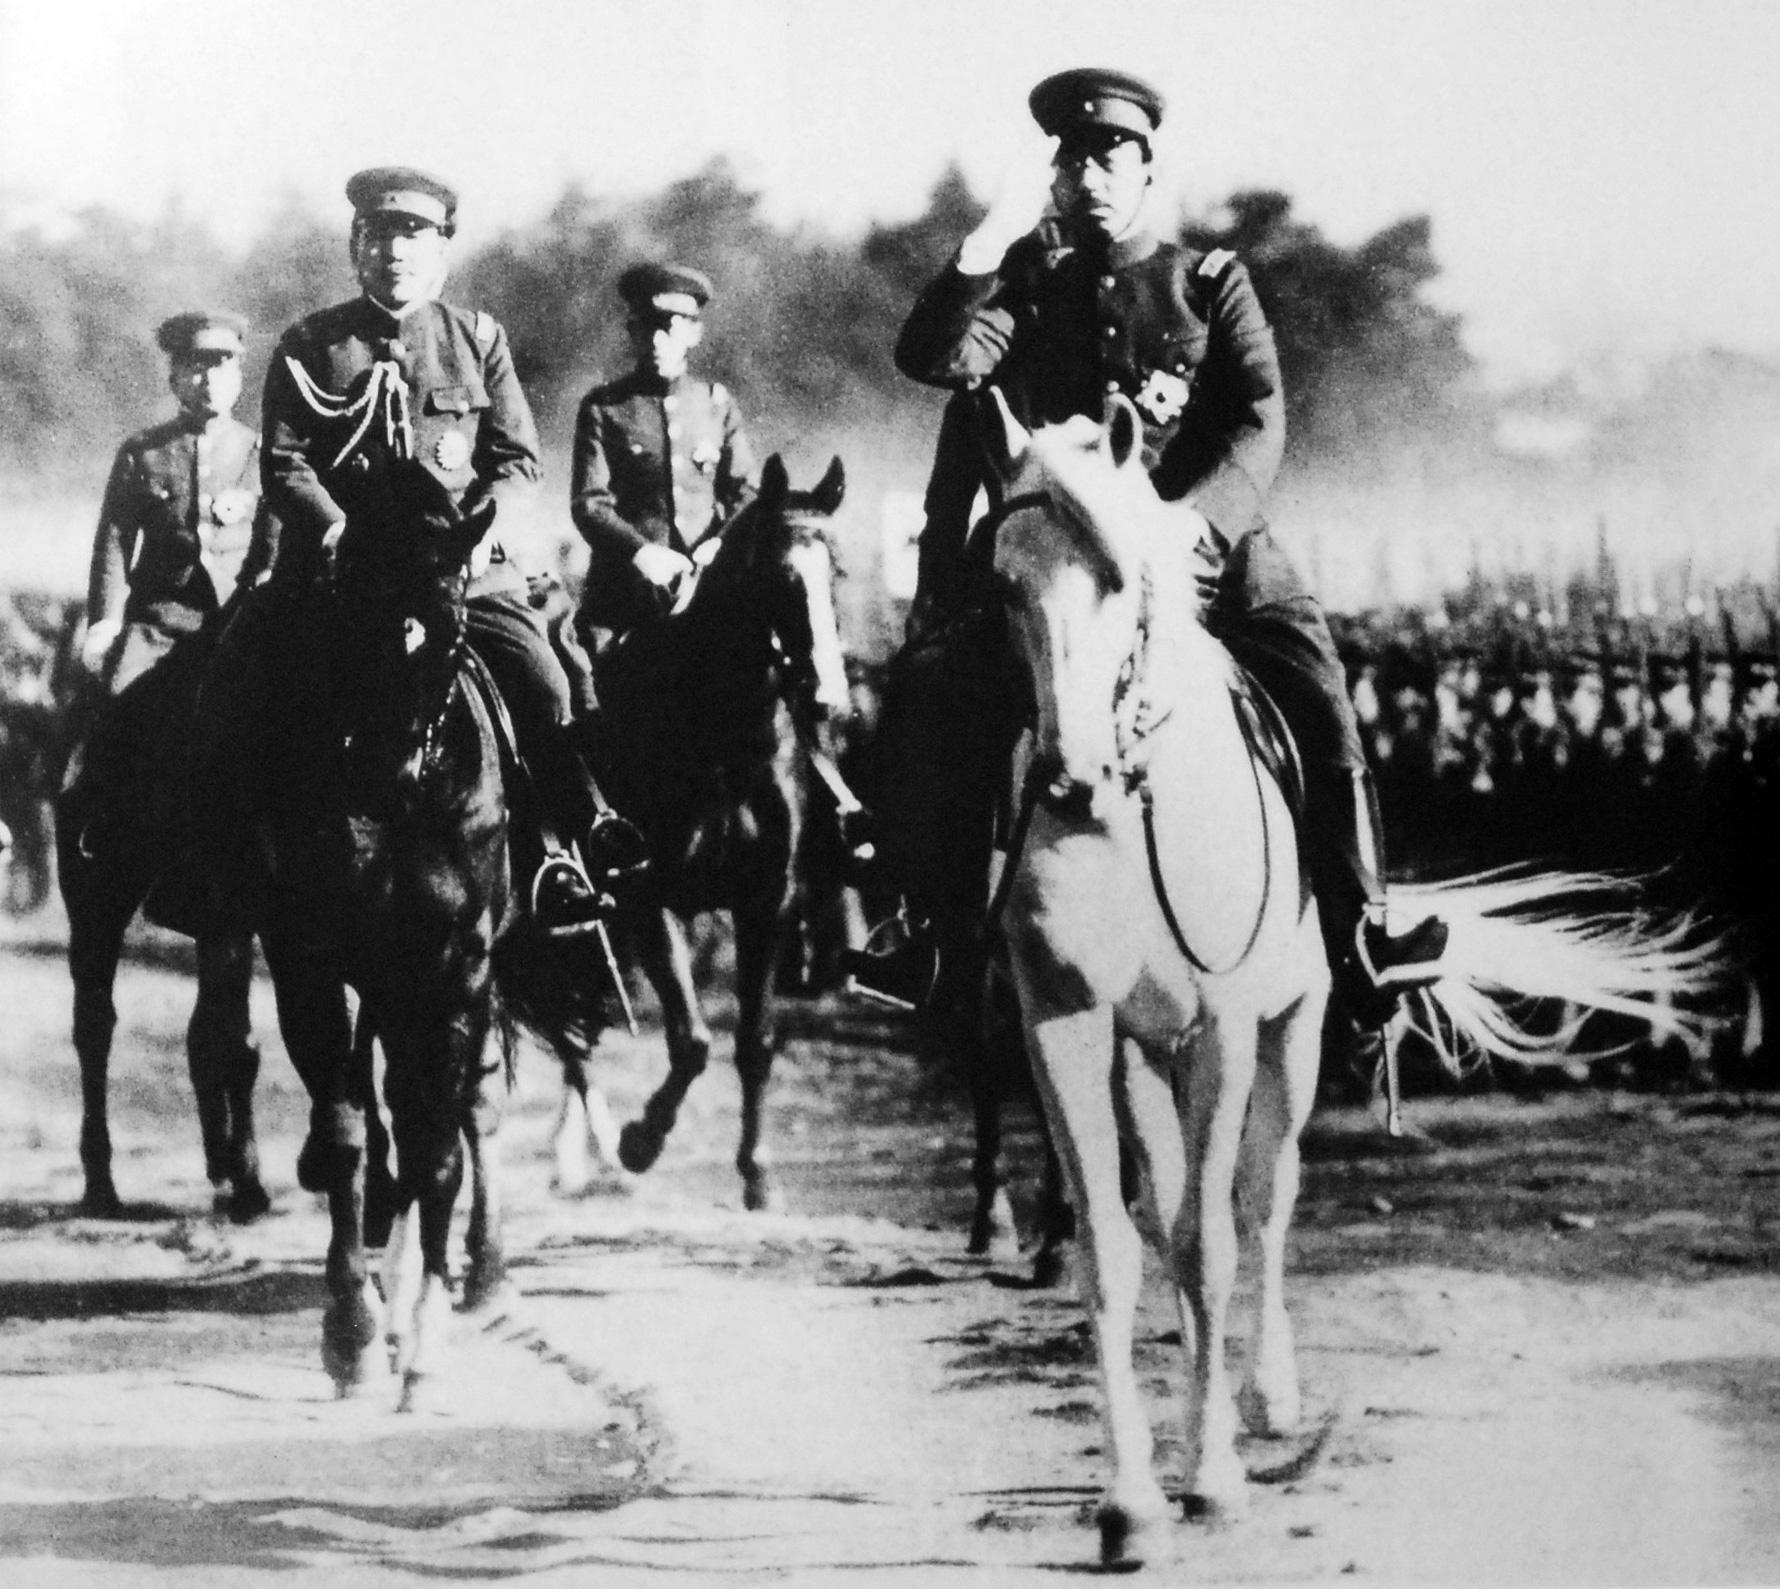 hirohito during wwii Hirohito was japan's longest-reigning emperor, holding the throne from 1926 to 1989 he was a controversial figure who announced japan's surrender to the allied forces in 1945.